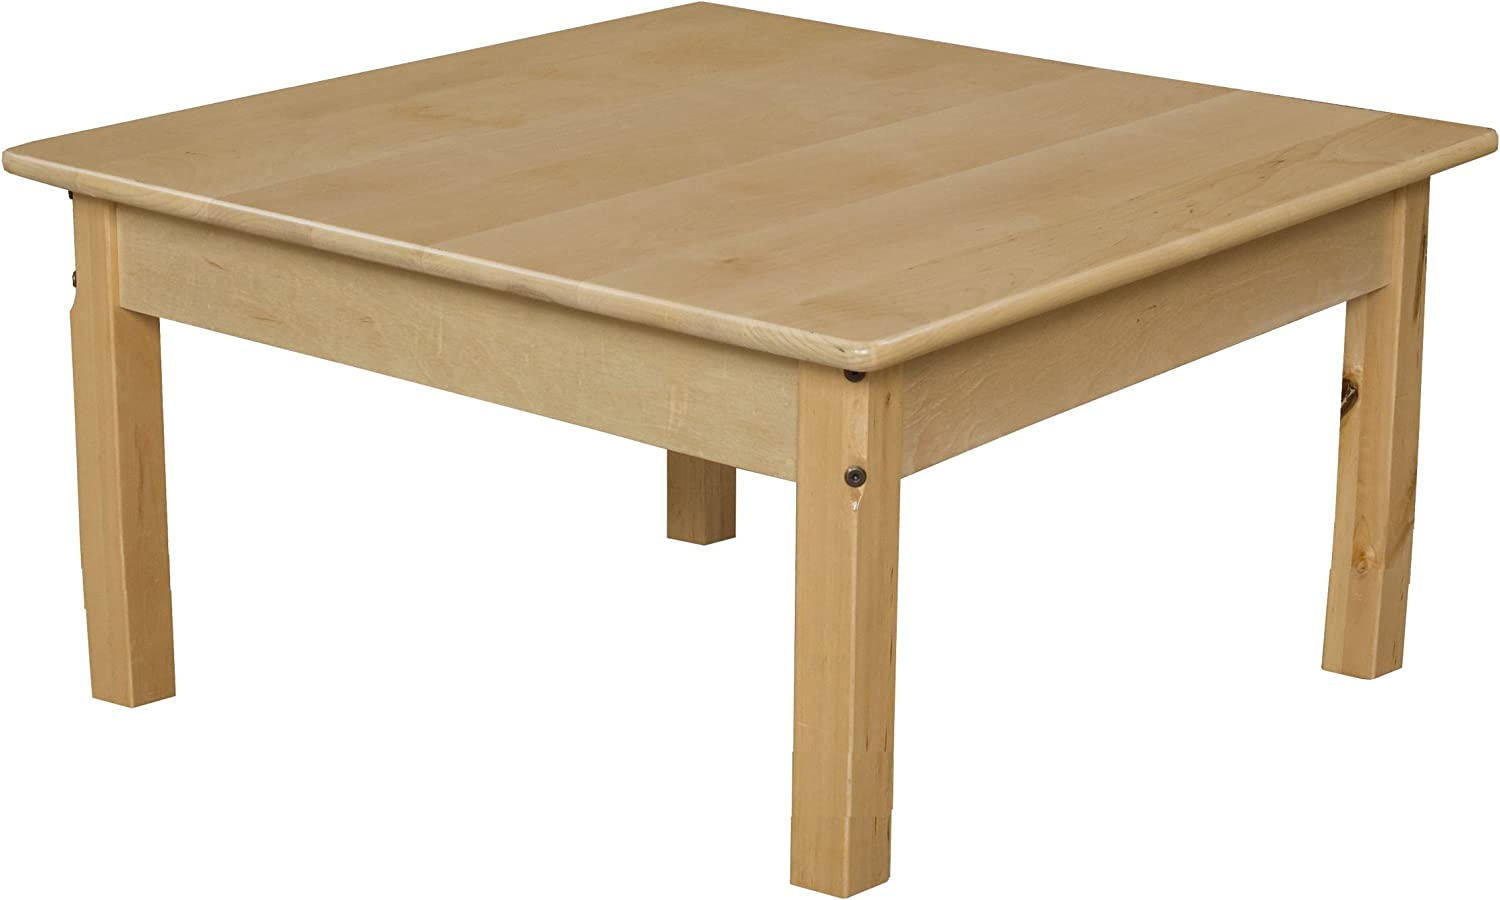 Wood Designs 83314 30  Square Hardwood Table with 14  Legs